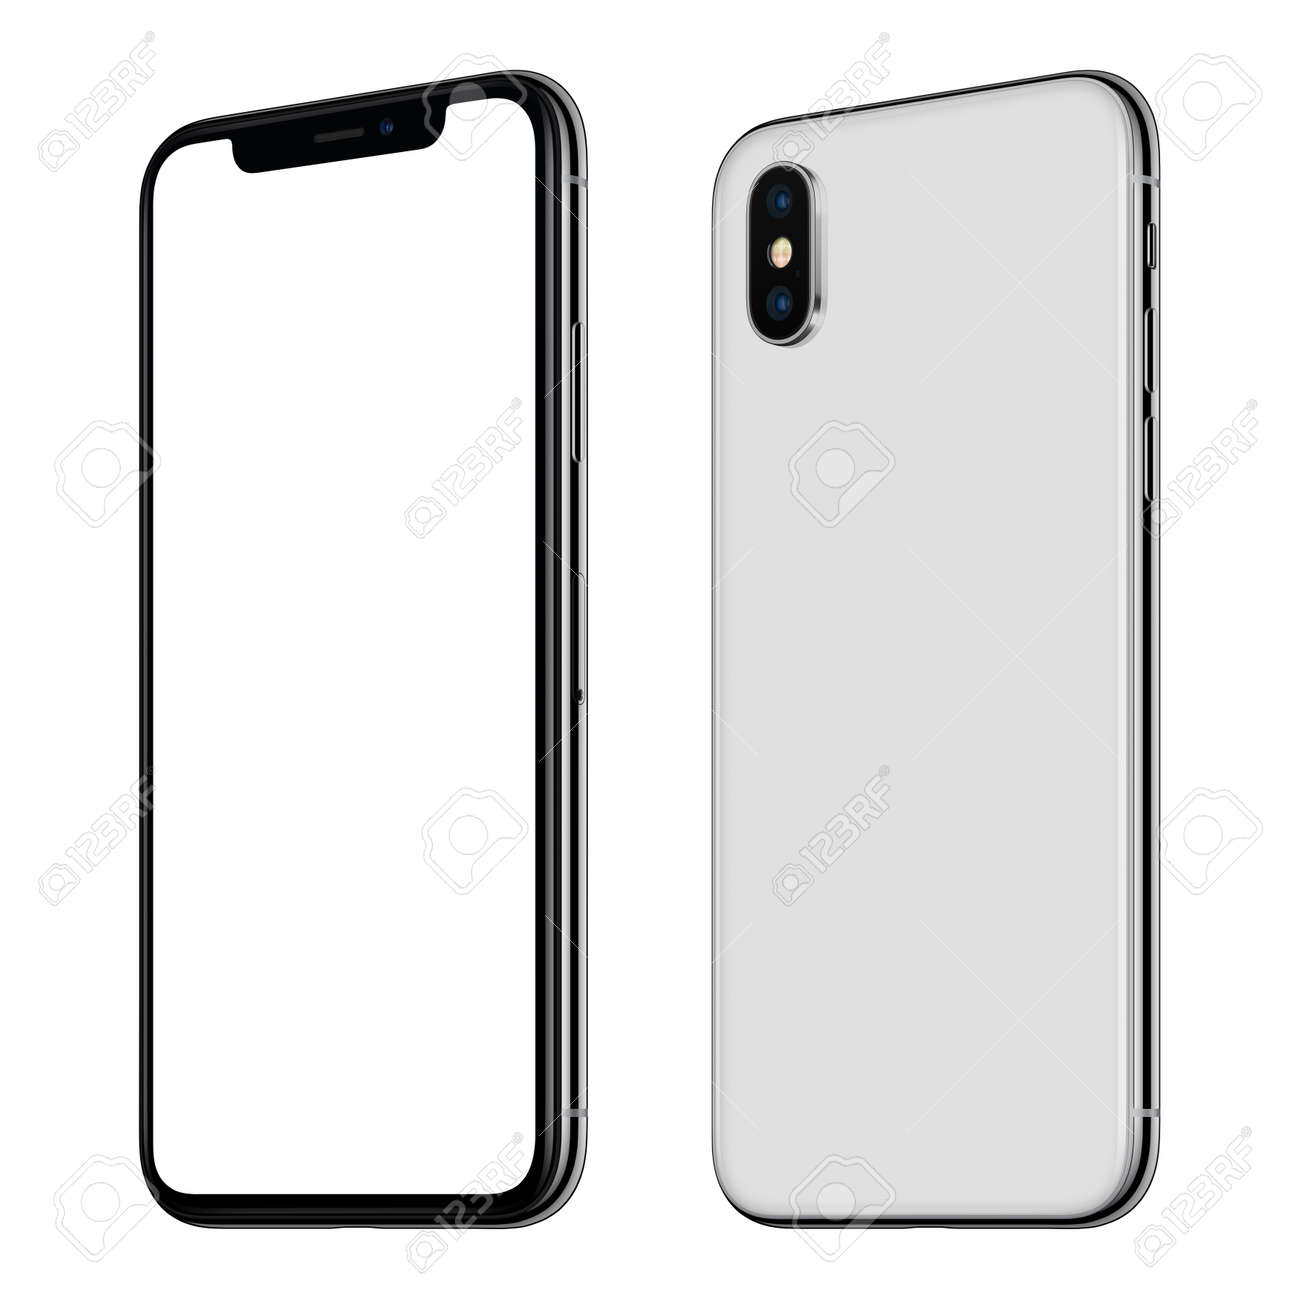 New white smartphone mockup front and back sides CW rotated isolated on white background - 89244699